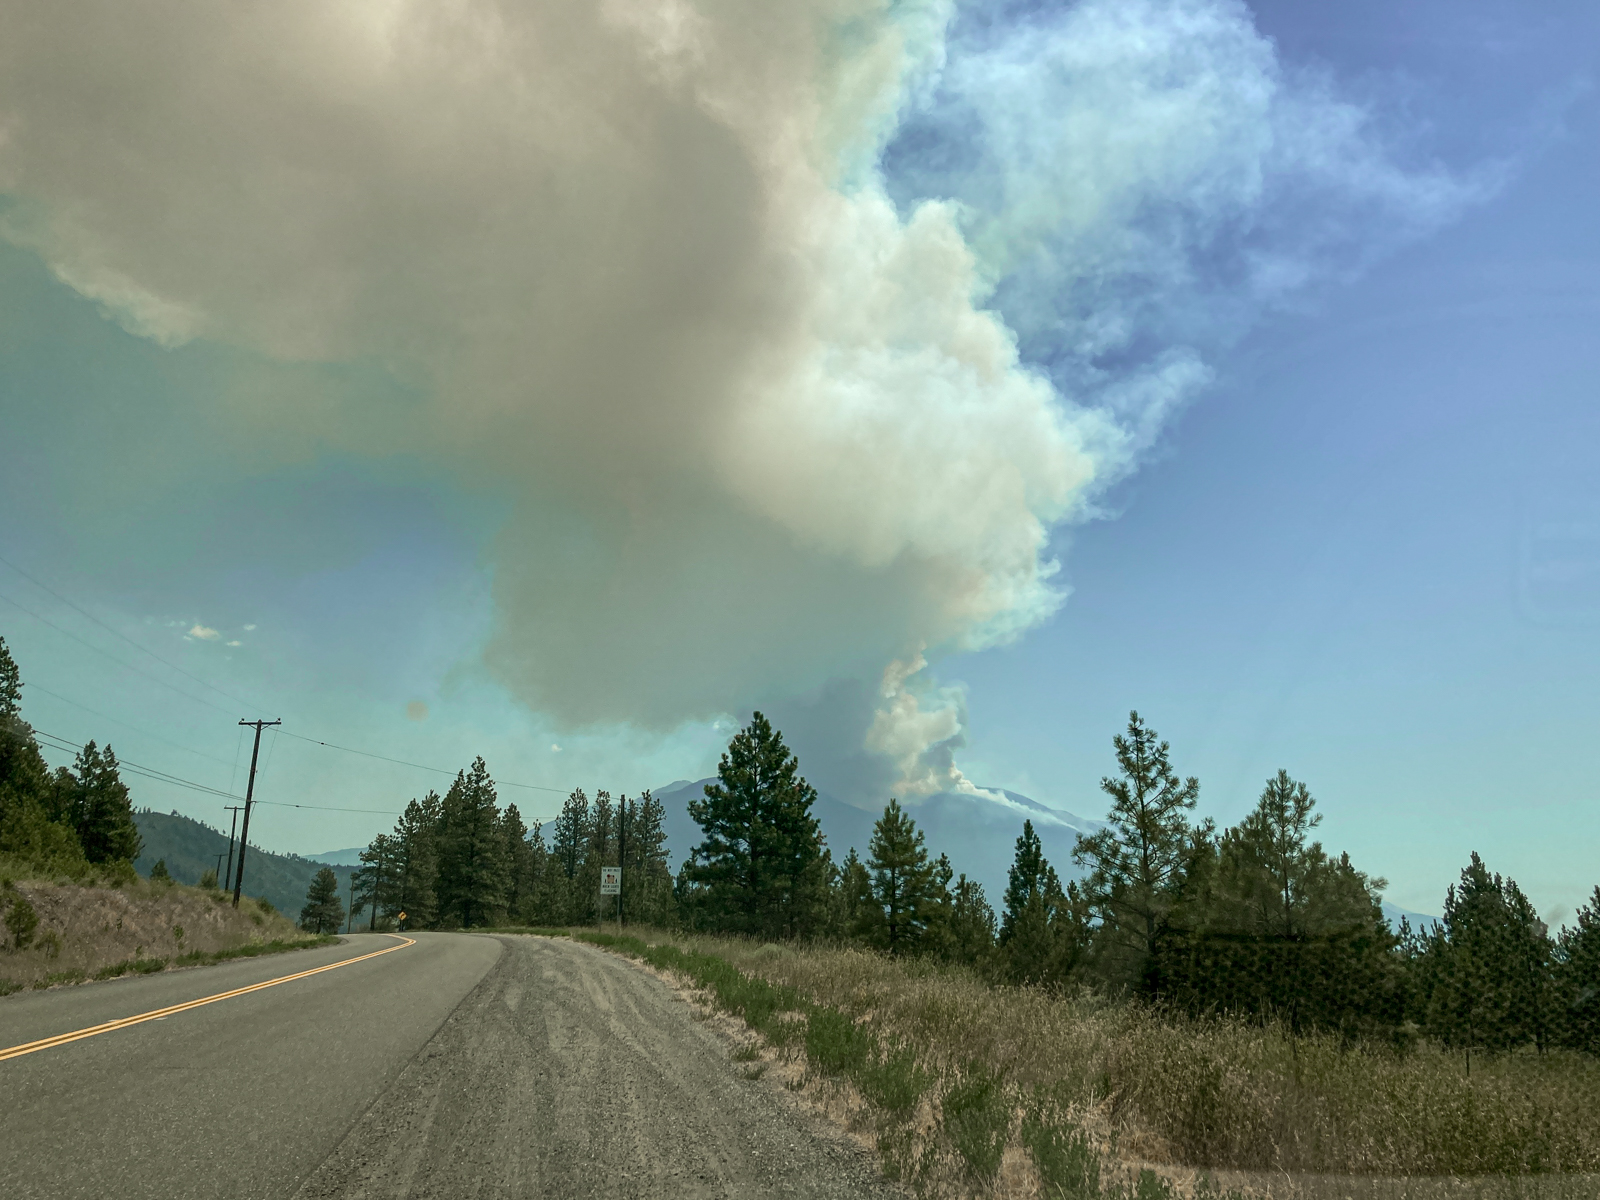 The fire south of Lytton. Just hours after this photo the town of Lytton burnt to the ground.